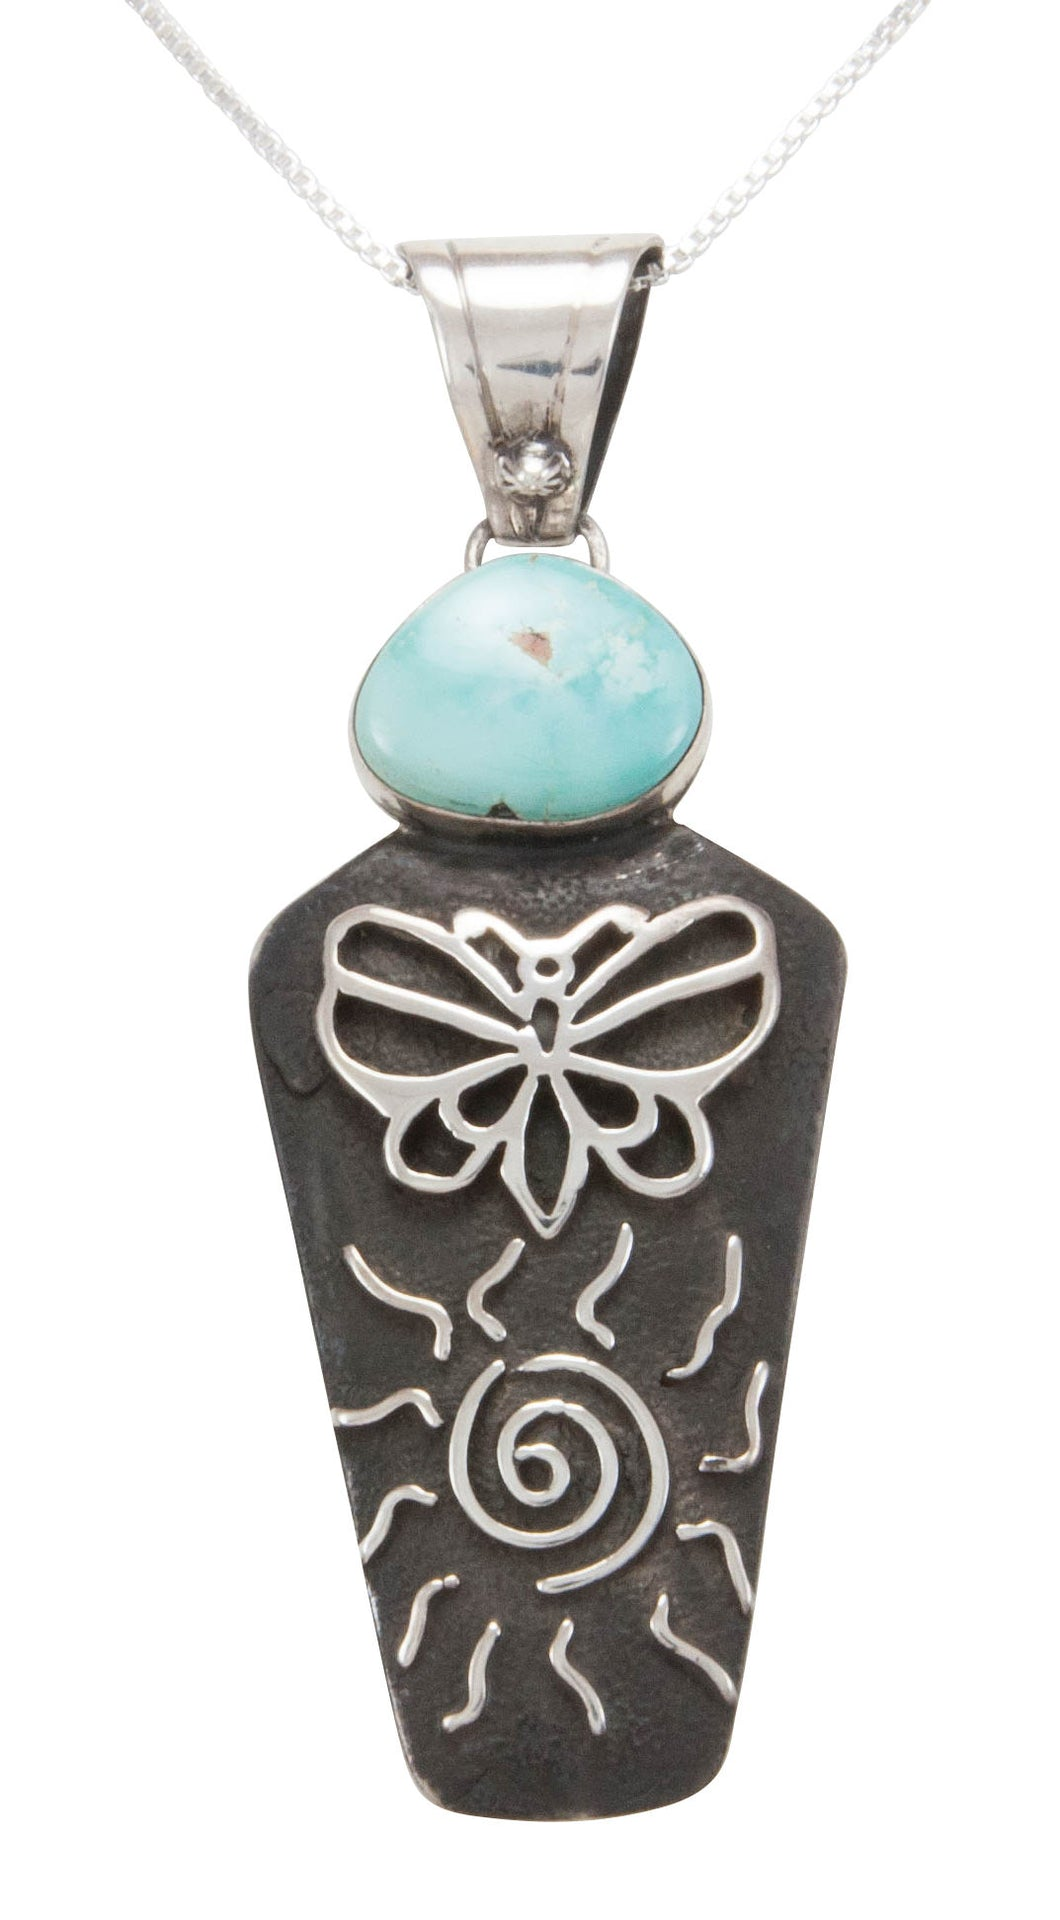 Navajo Native American Carico Lake Turquoise Pendant by Billie SKU231129